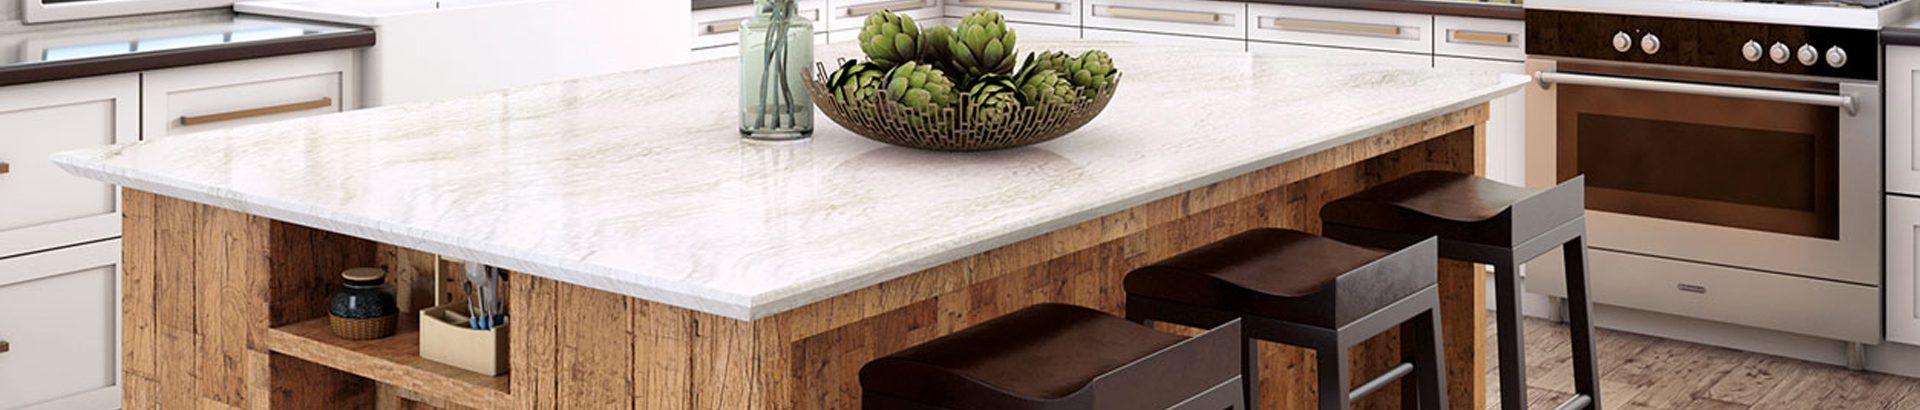 Beautiful countertops from Republic Cabinets will add another dimension to your kitchen design